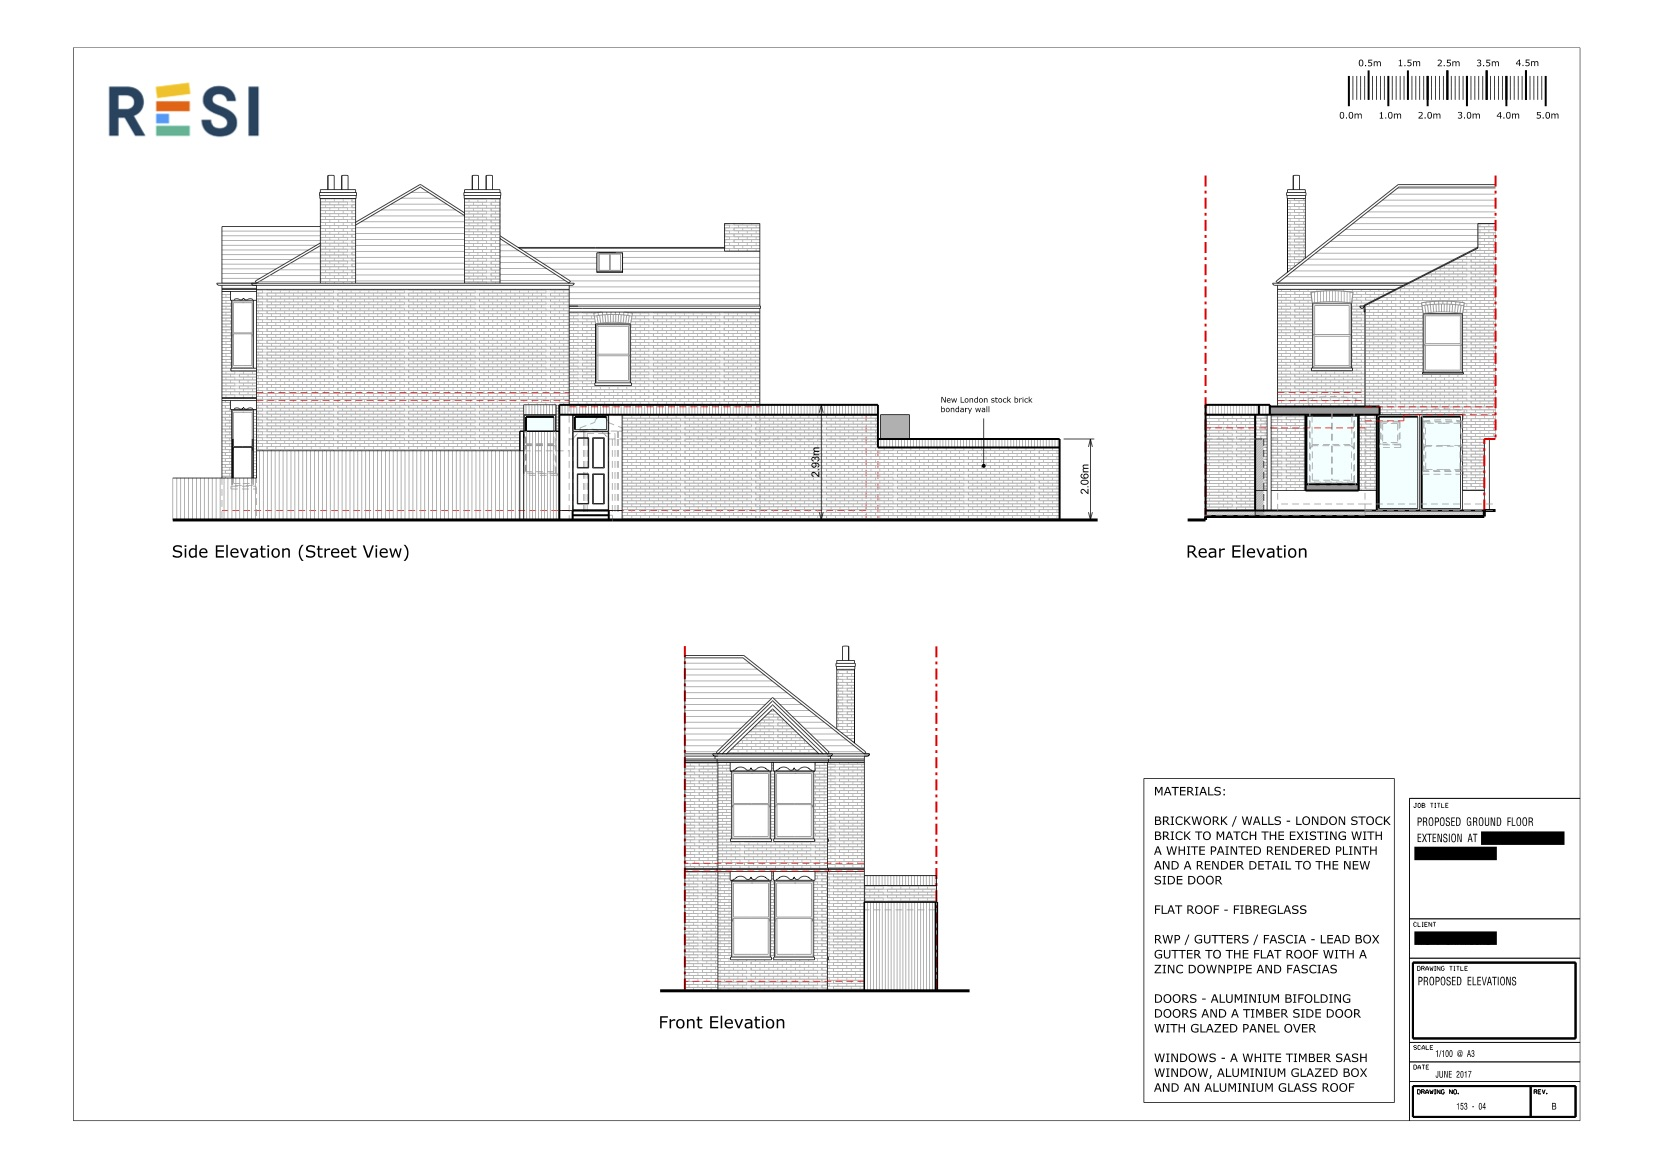 Revised architectural drawings   elevations